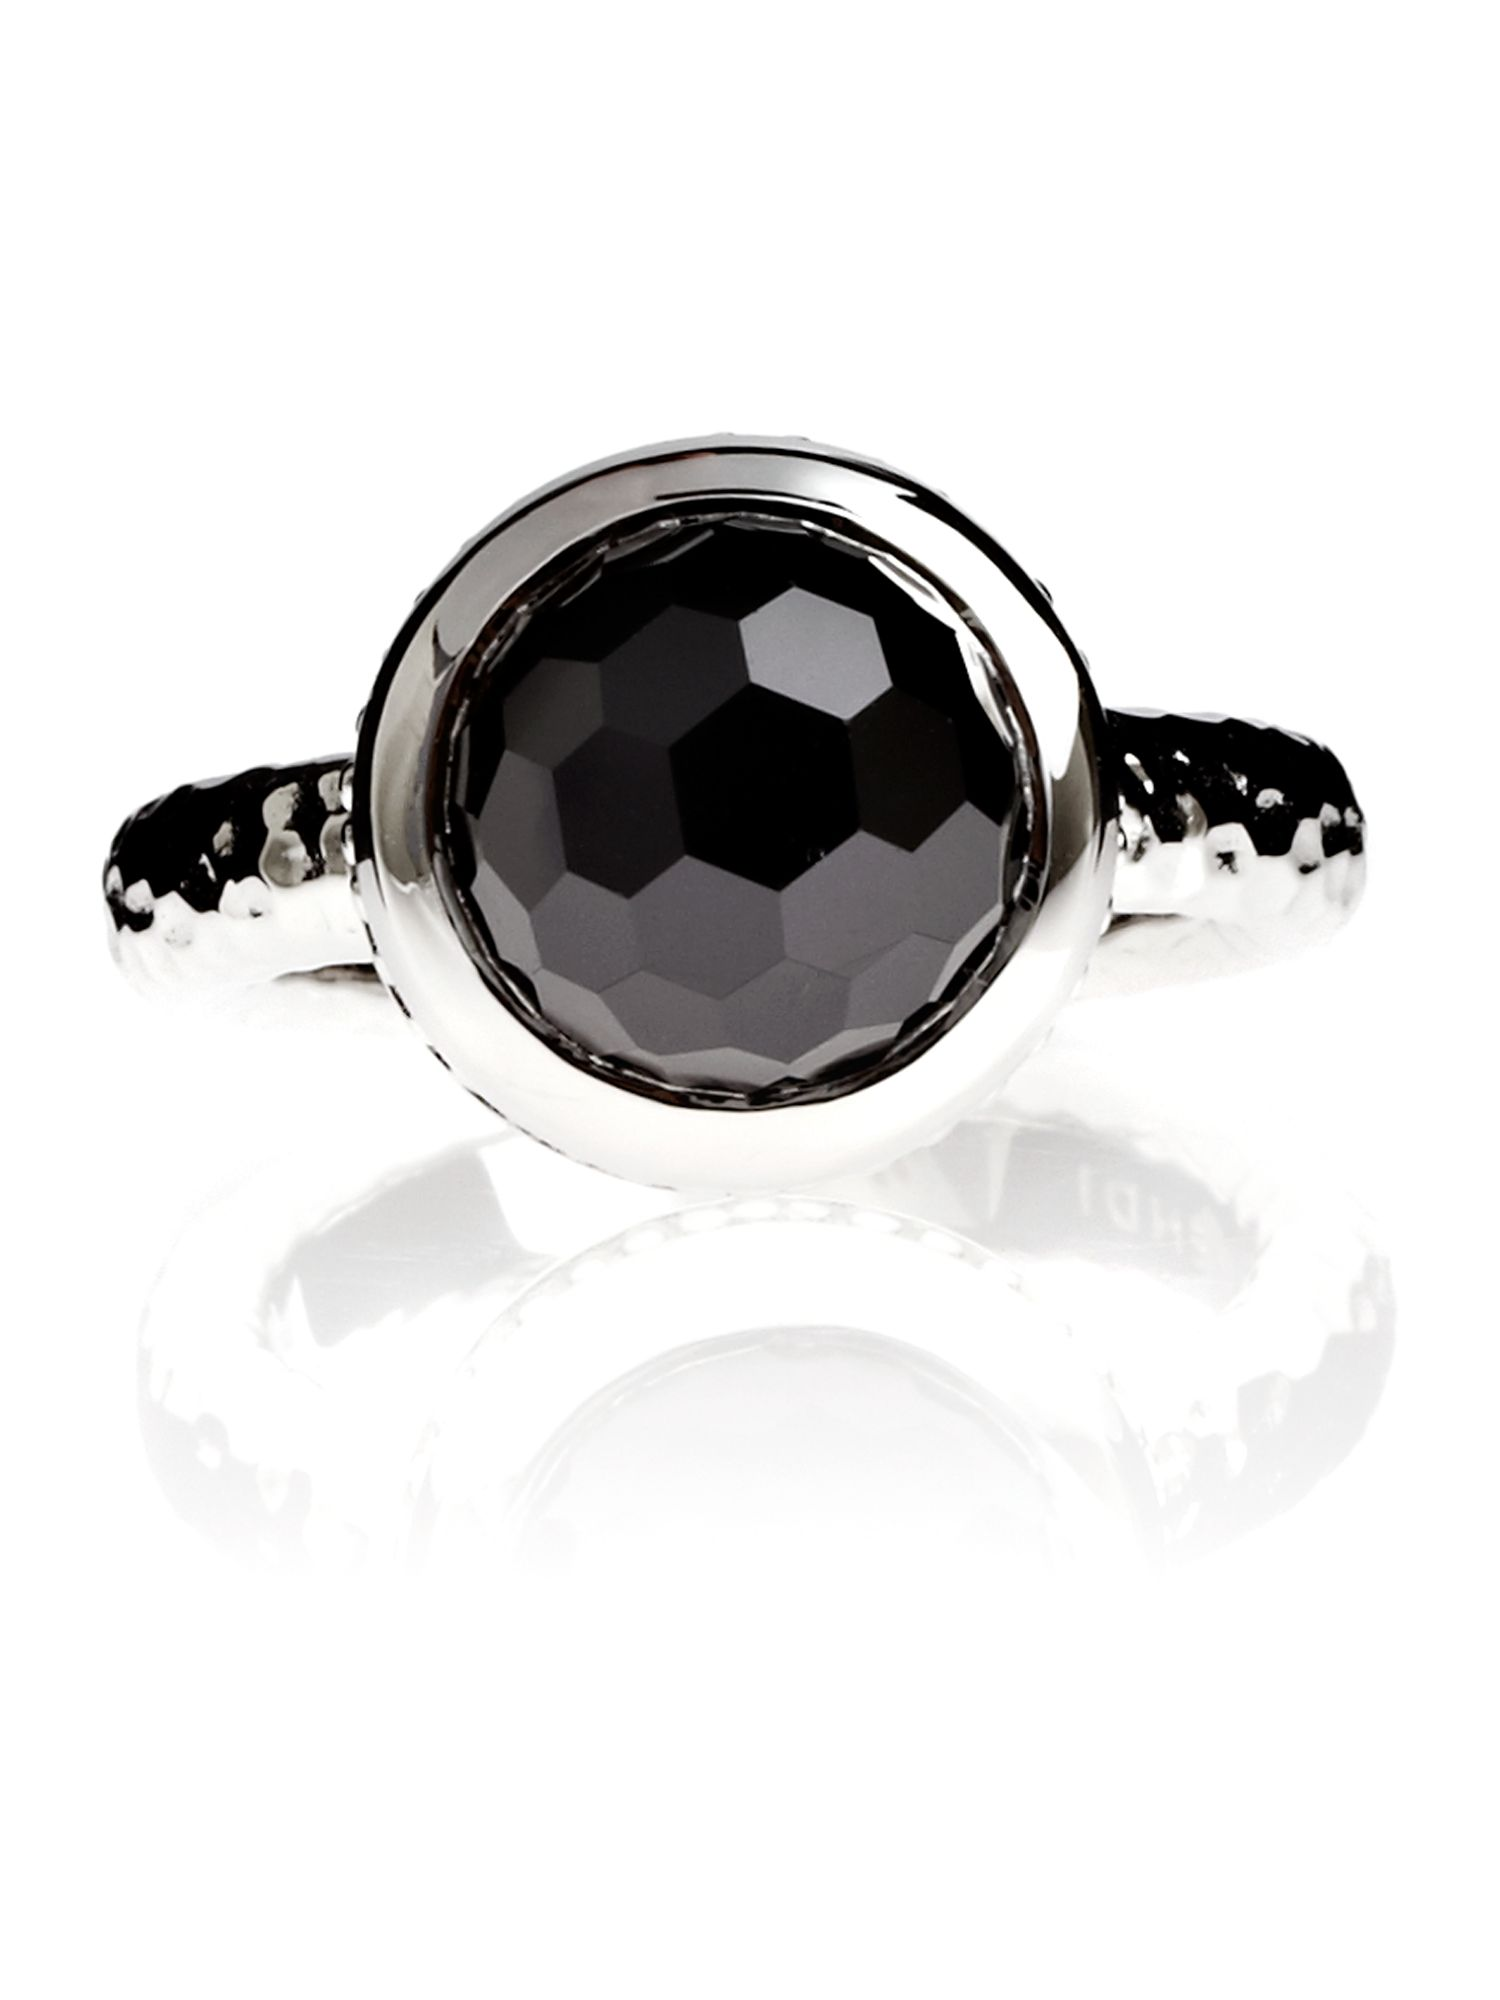 Azendi Dome Facets Black Cocktail Ring, Black